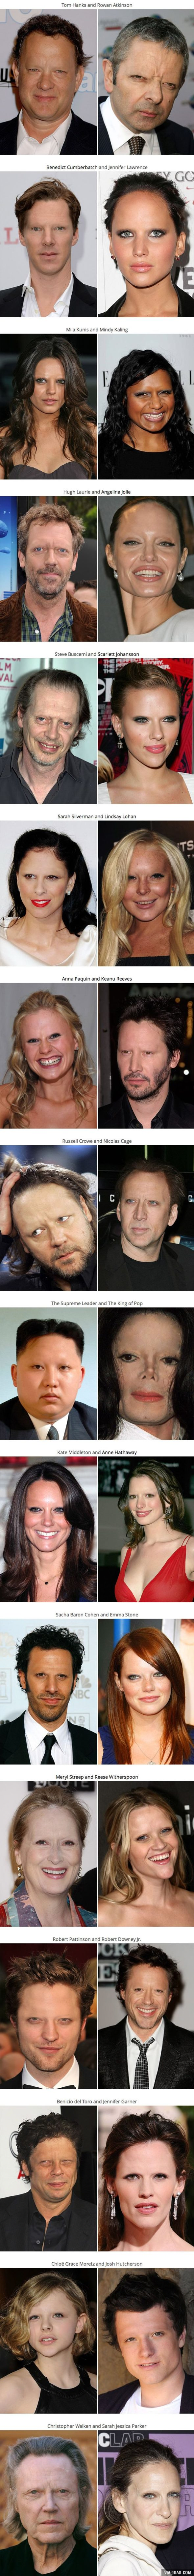 32 Celebrities Without Eyebrows